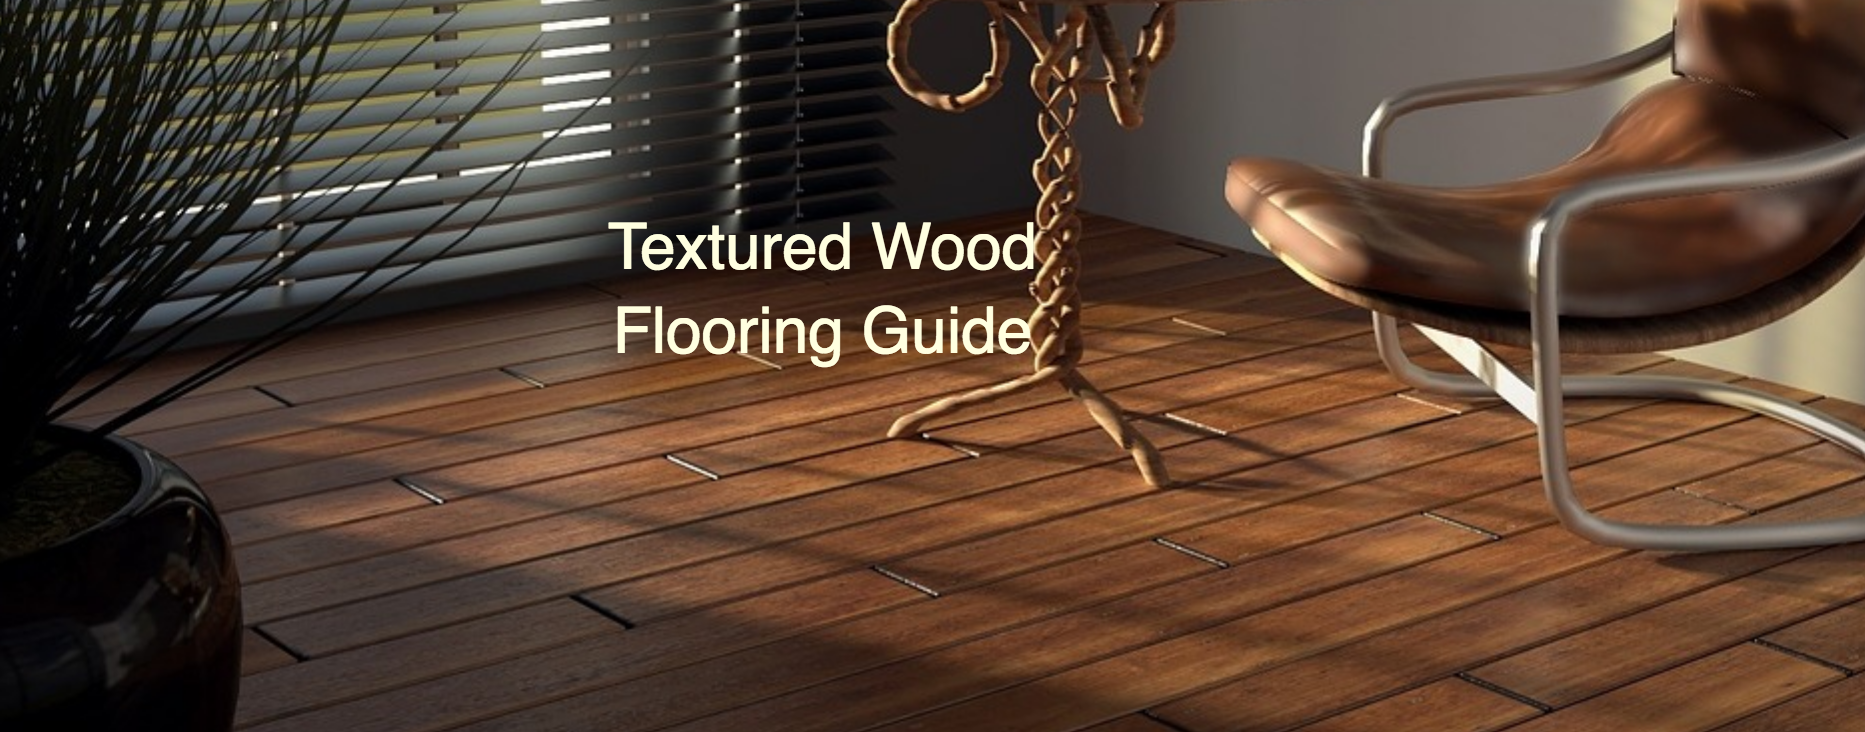 Textured Wood Flooring Guide Wood And Beyond Blog